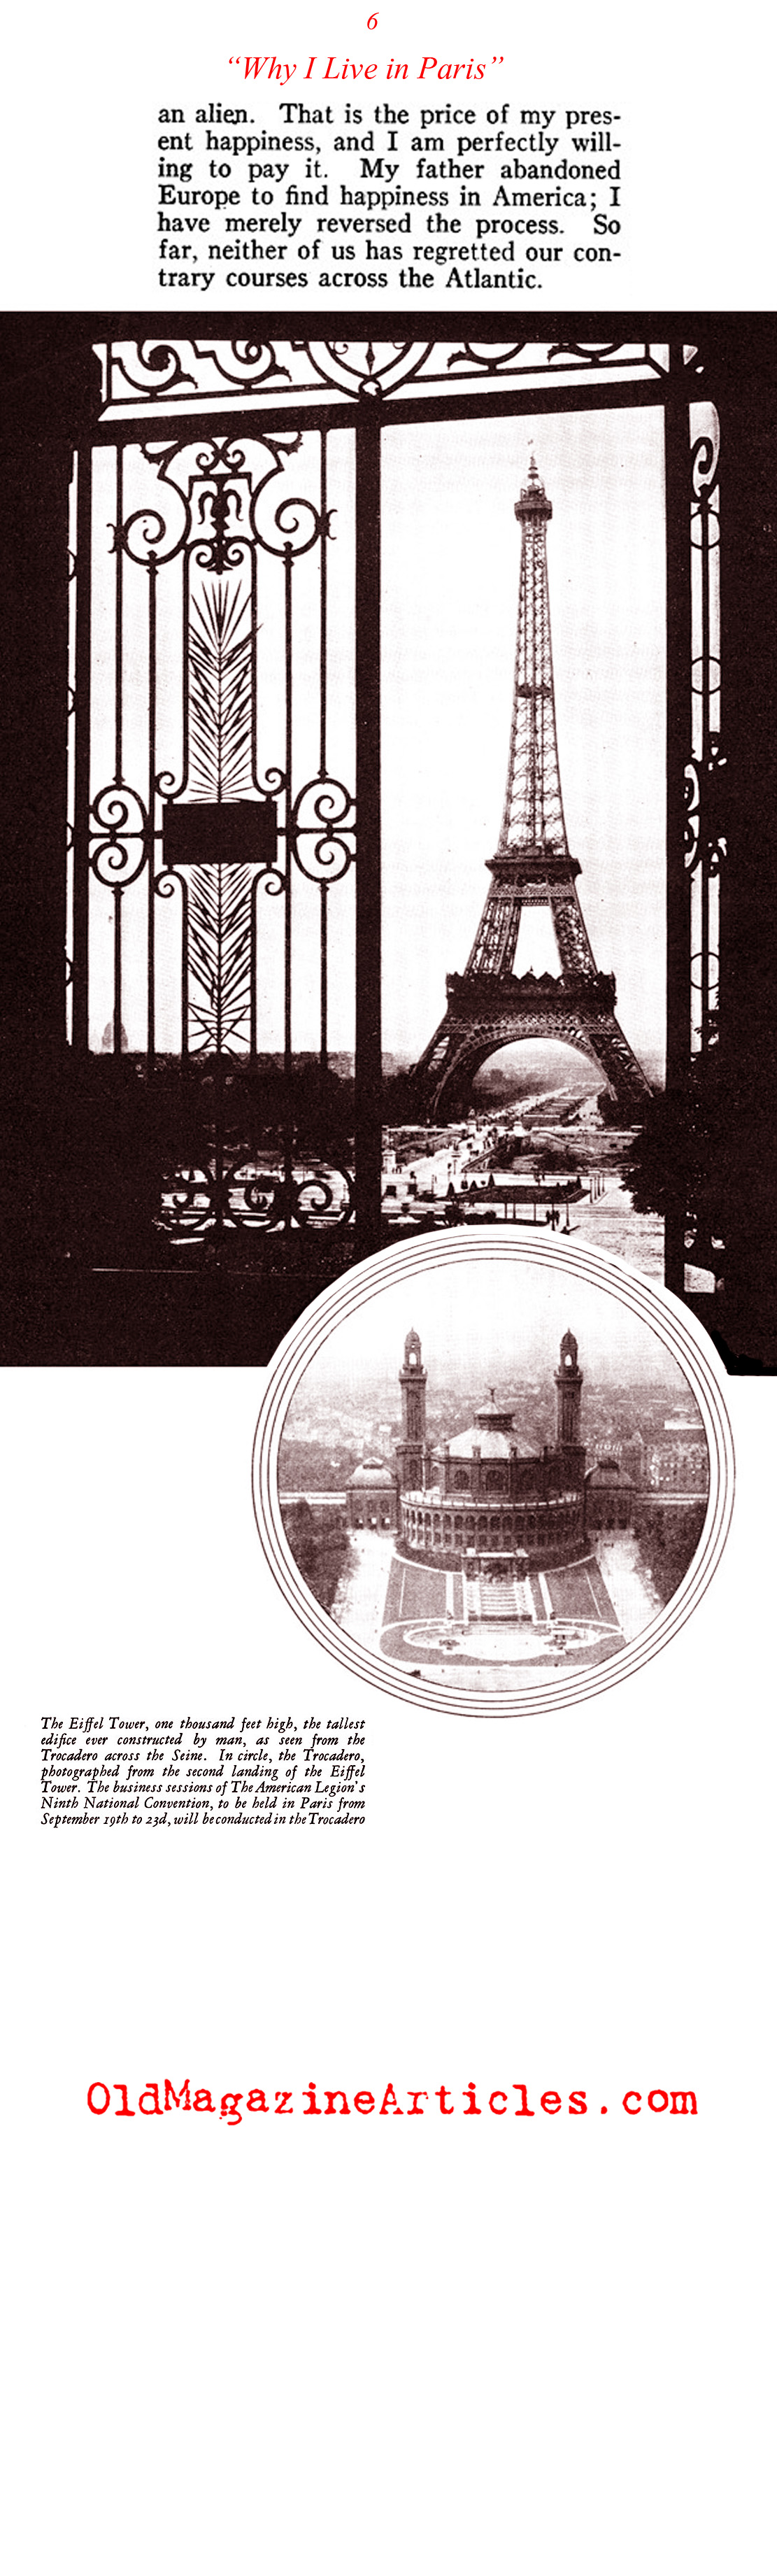 ''Why I Live in Paris'' by a Former American Soldier (American Legion Monthly, 1927)